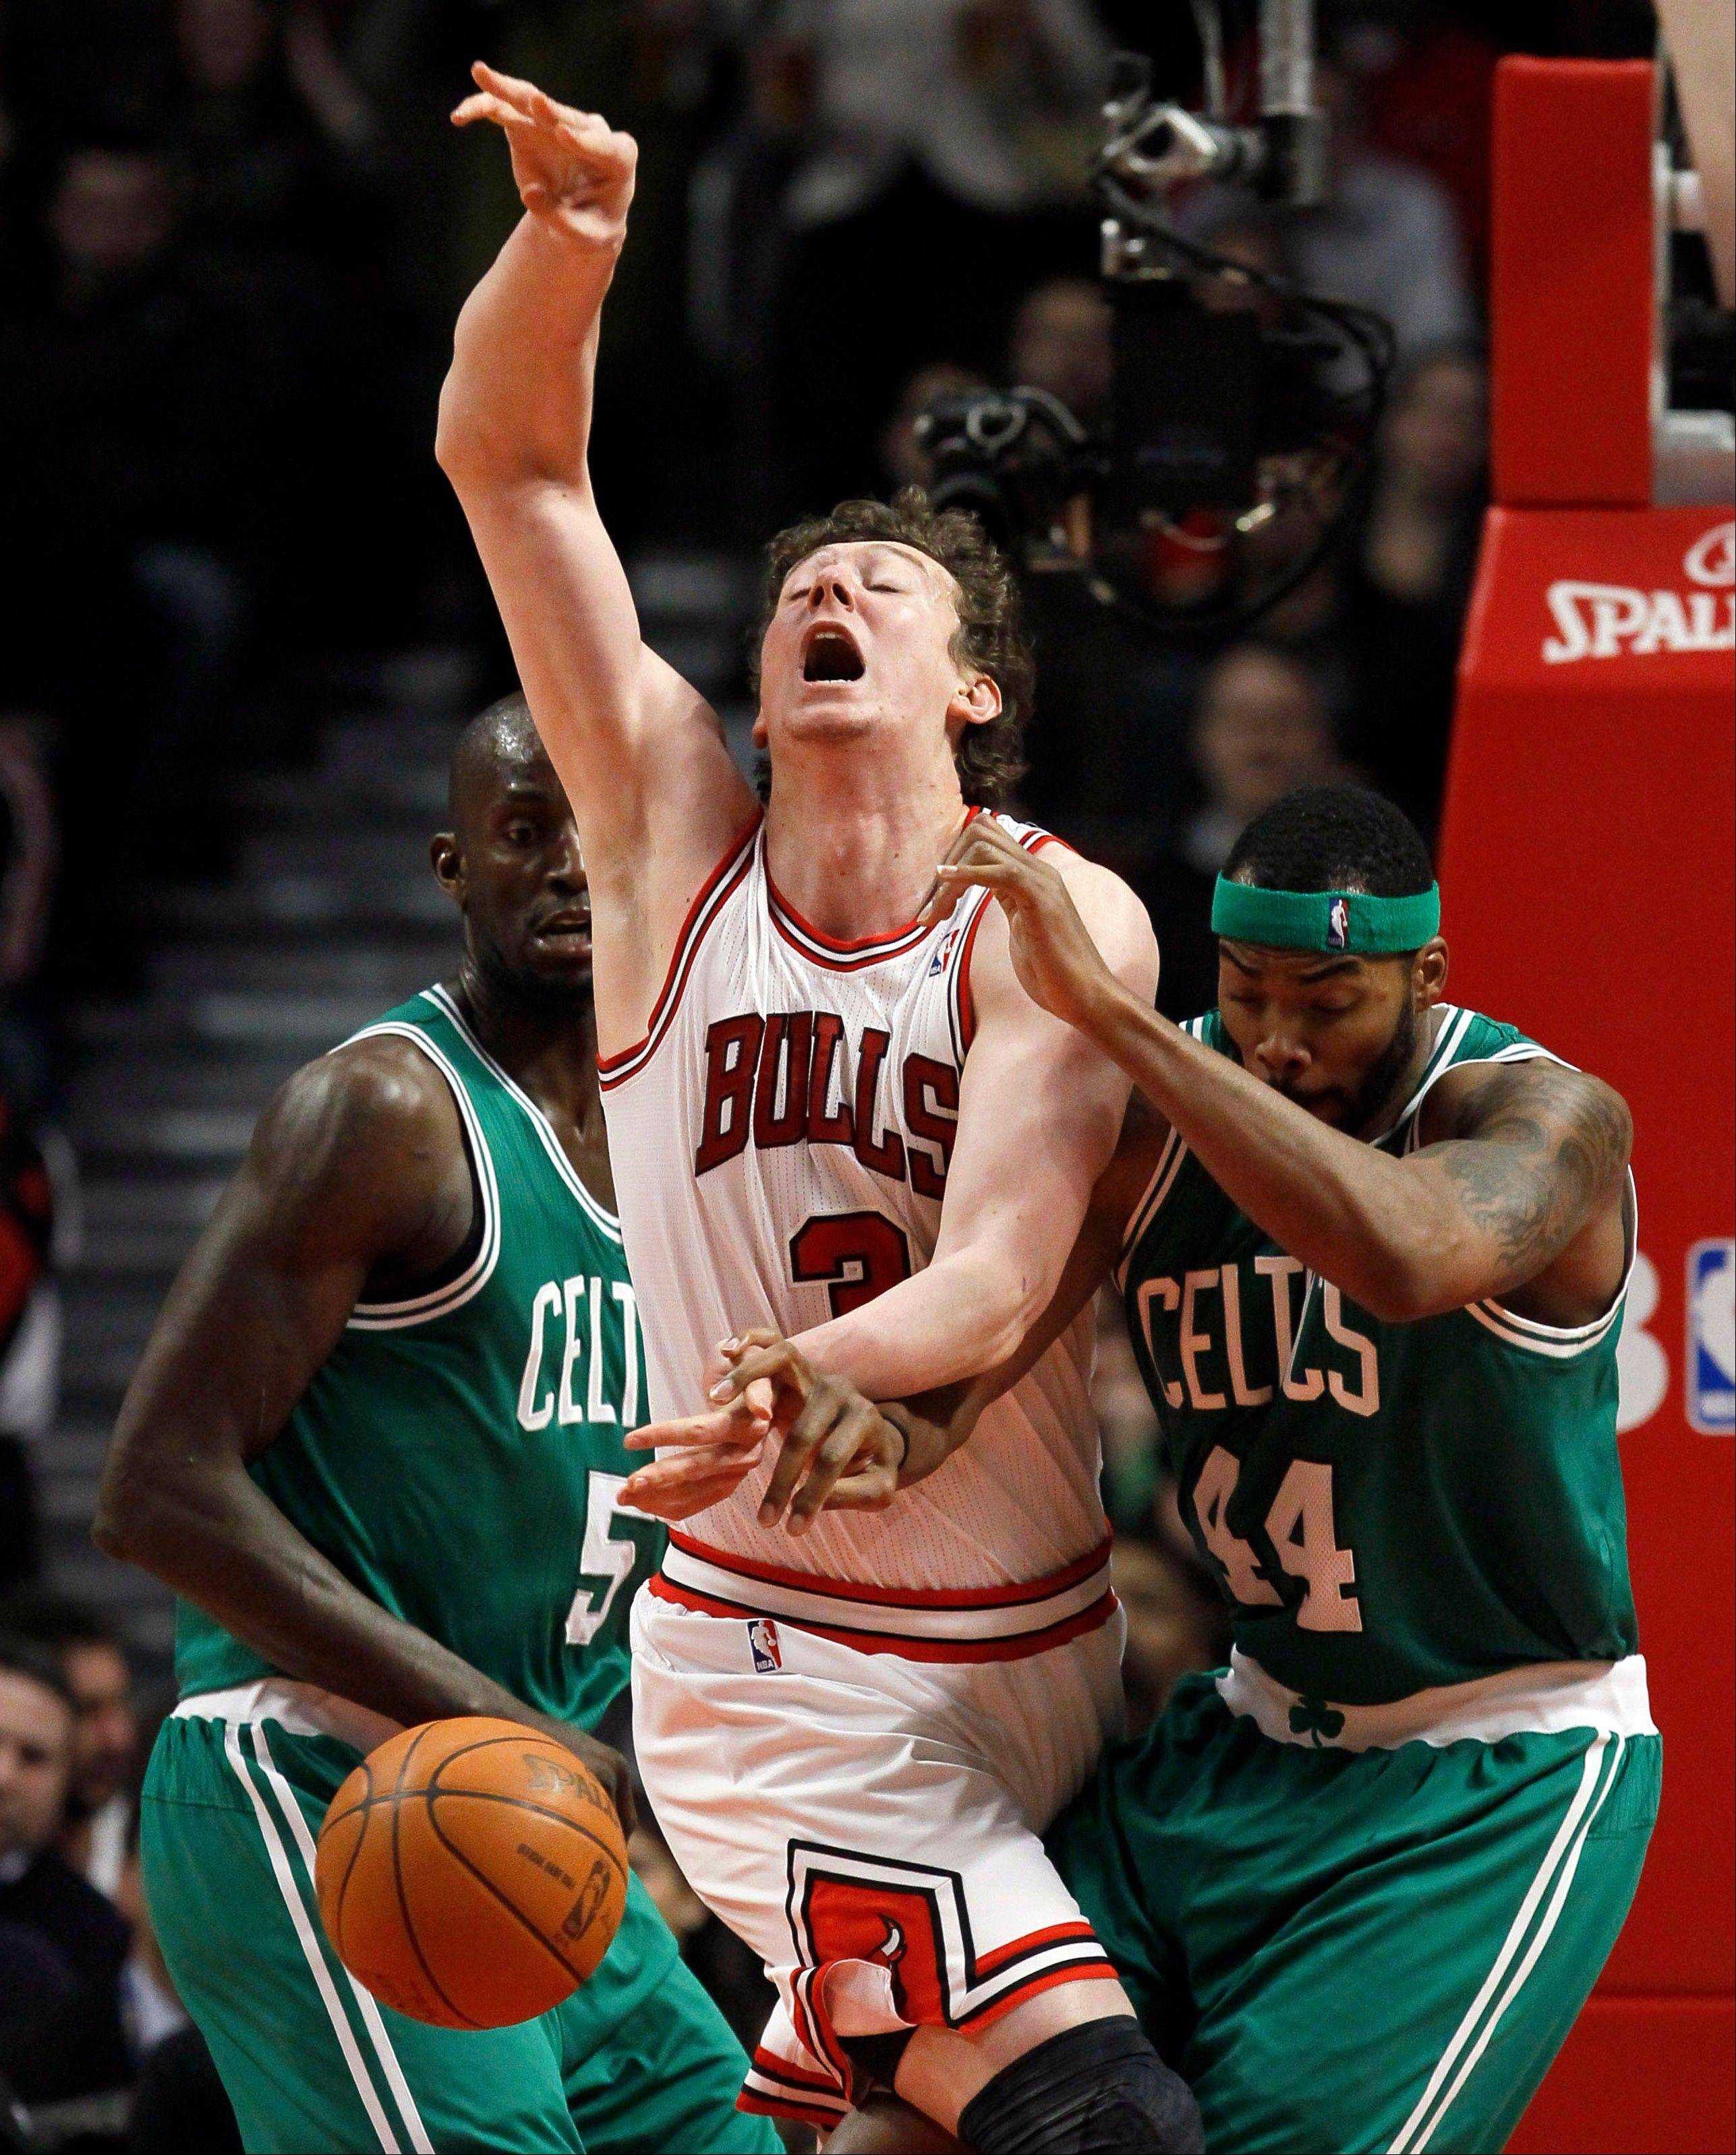 Bulls center Omer Asik reacts after Boston Celtics power forward Chris Wilcox knocked the ball from his hands Thursday as Celtics' Kevin Garnett (5) watches during the first half.